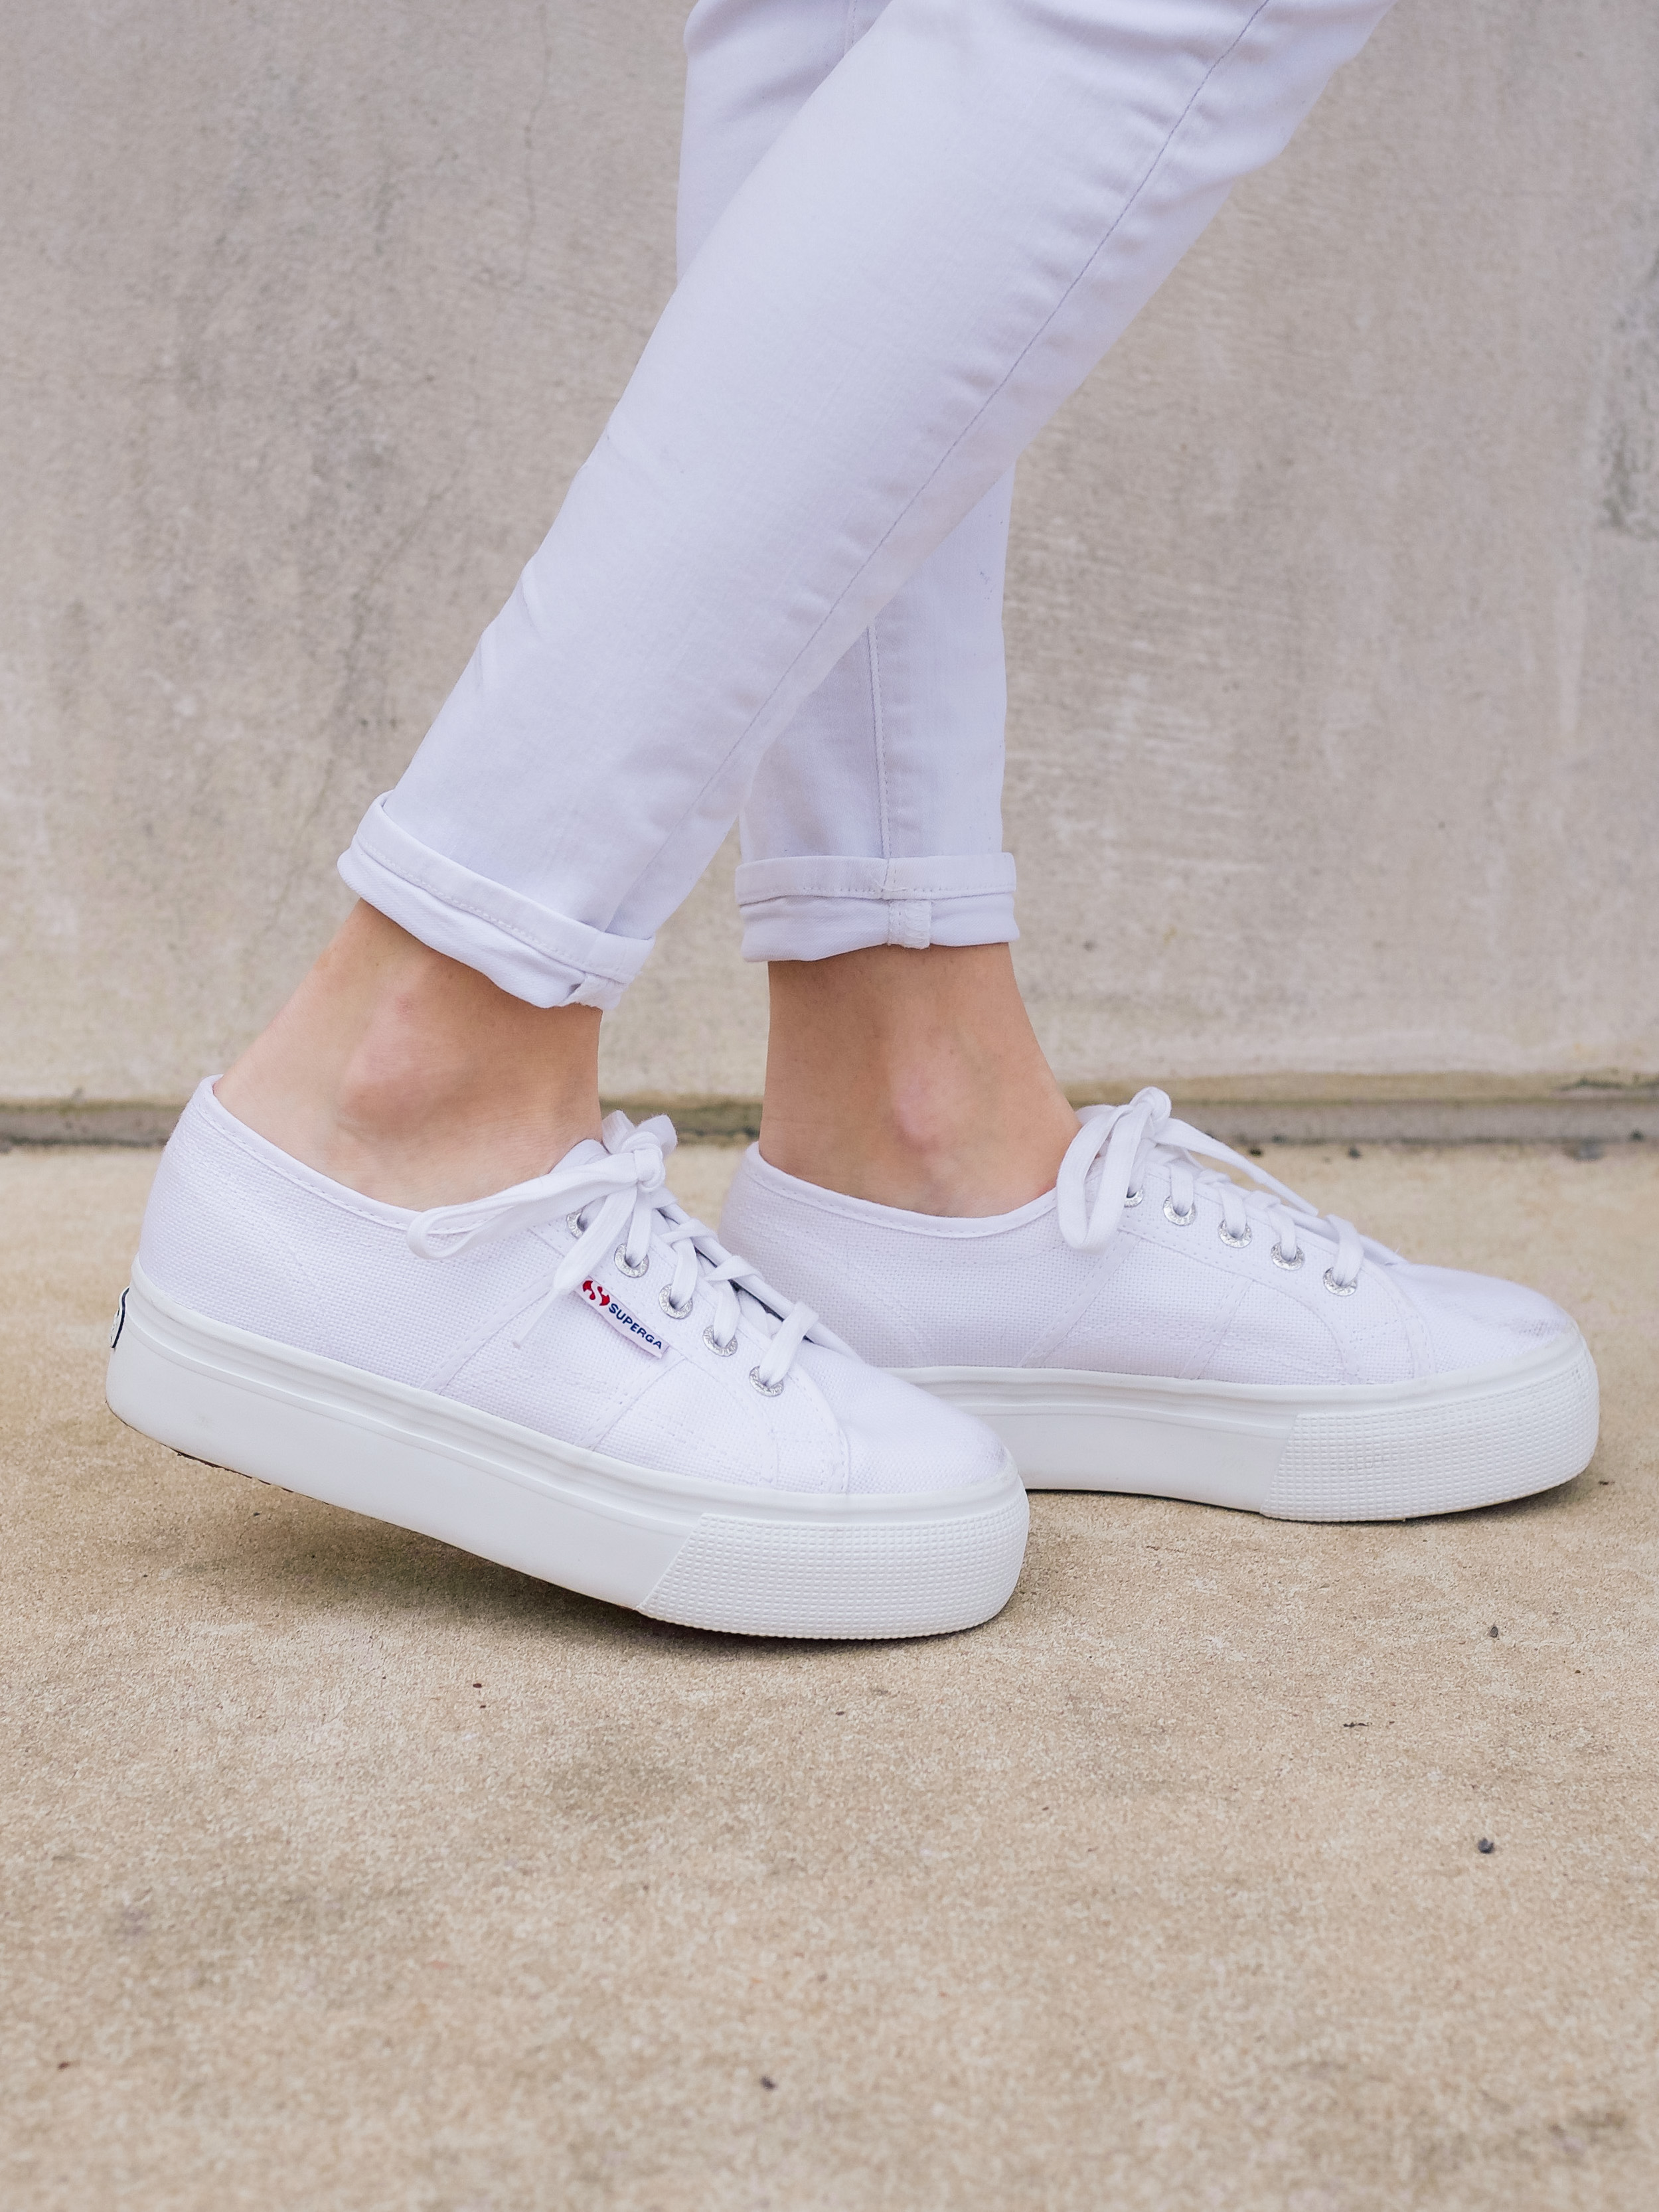 fashion blogger lcb style winter outfit superga sneakers (34 of 47).jpg